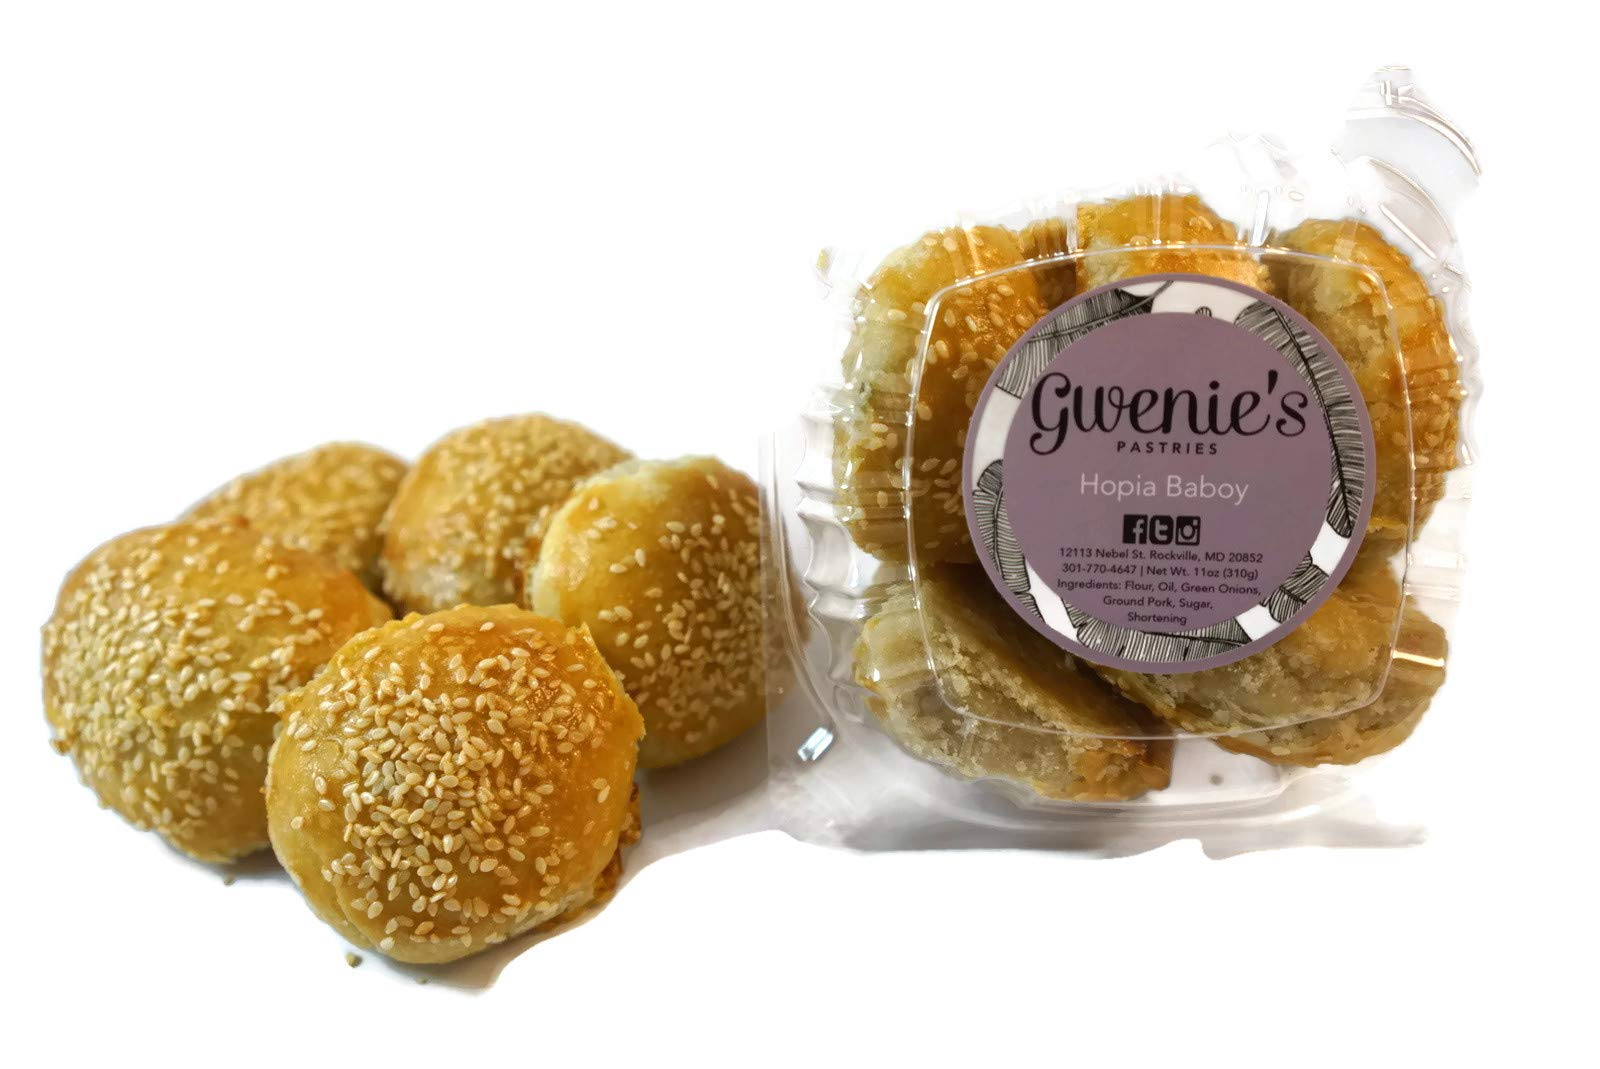 Gwenie's Pastries, Hopia Baboy Filipino Pastry (1 Pack/5 pieces per pack)